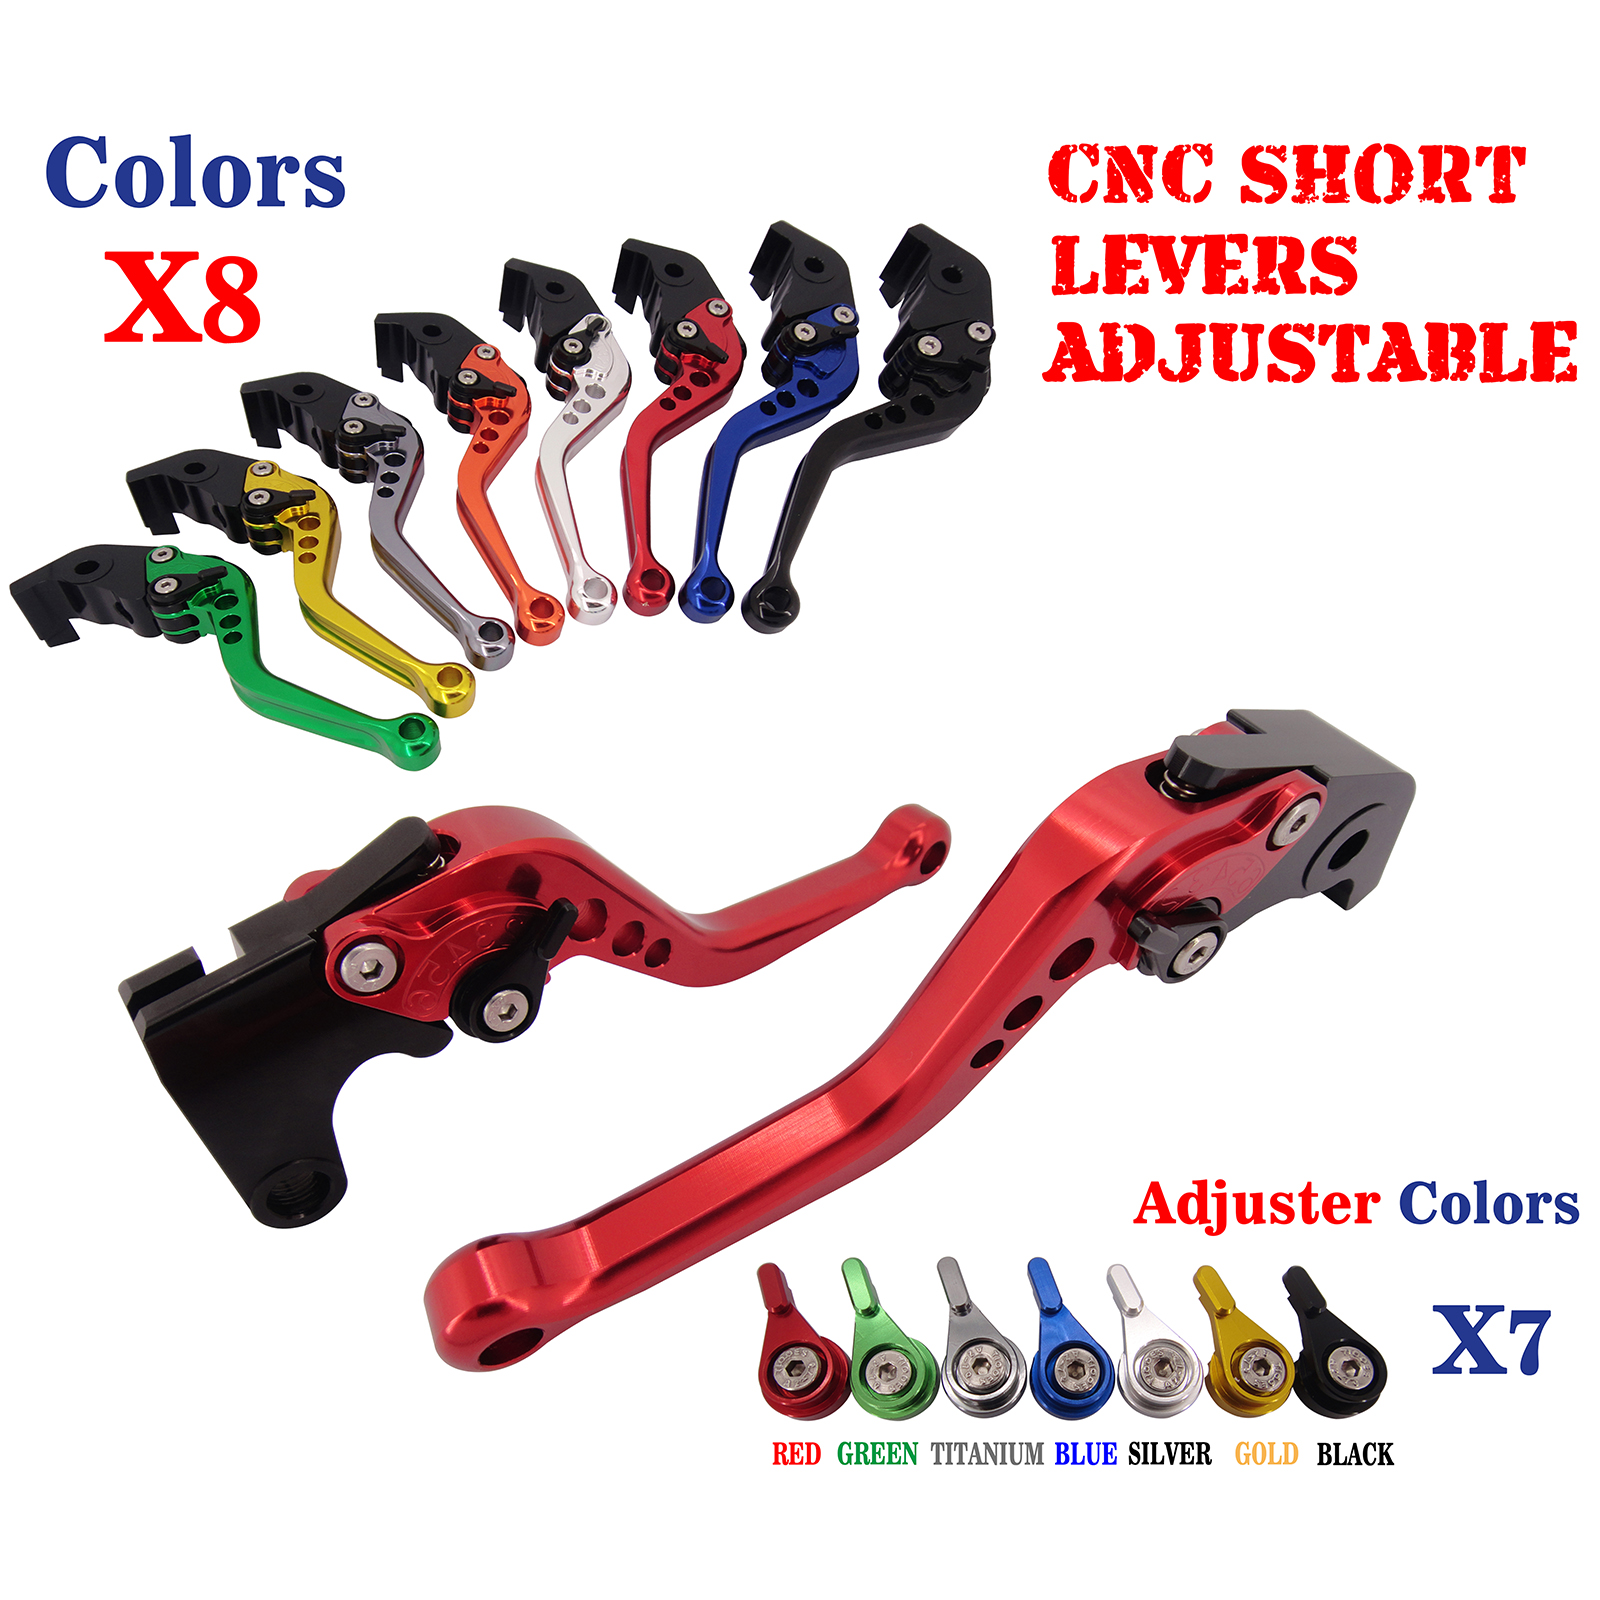 Adjustable CNC Short Brake Clutch Levers For Suzuki SV650/S/N 1999-2010 DL650/V-Strom GSX600F/750F GSX-R750 RGV250 Gamma adjustable short straight clutch brake levers for suzuki rgv 250 rgv250 gsx 600 f gsx600f sv 650 n s gsx r 750 w 1990 1995